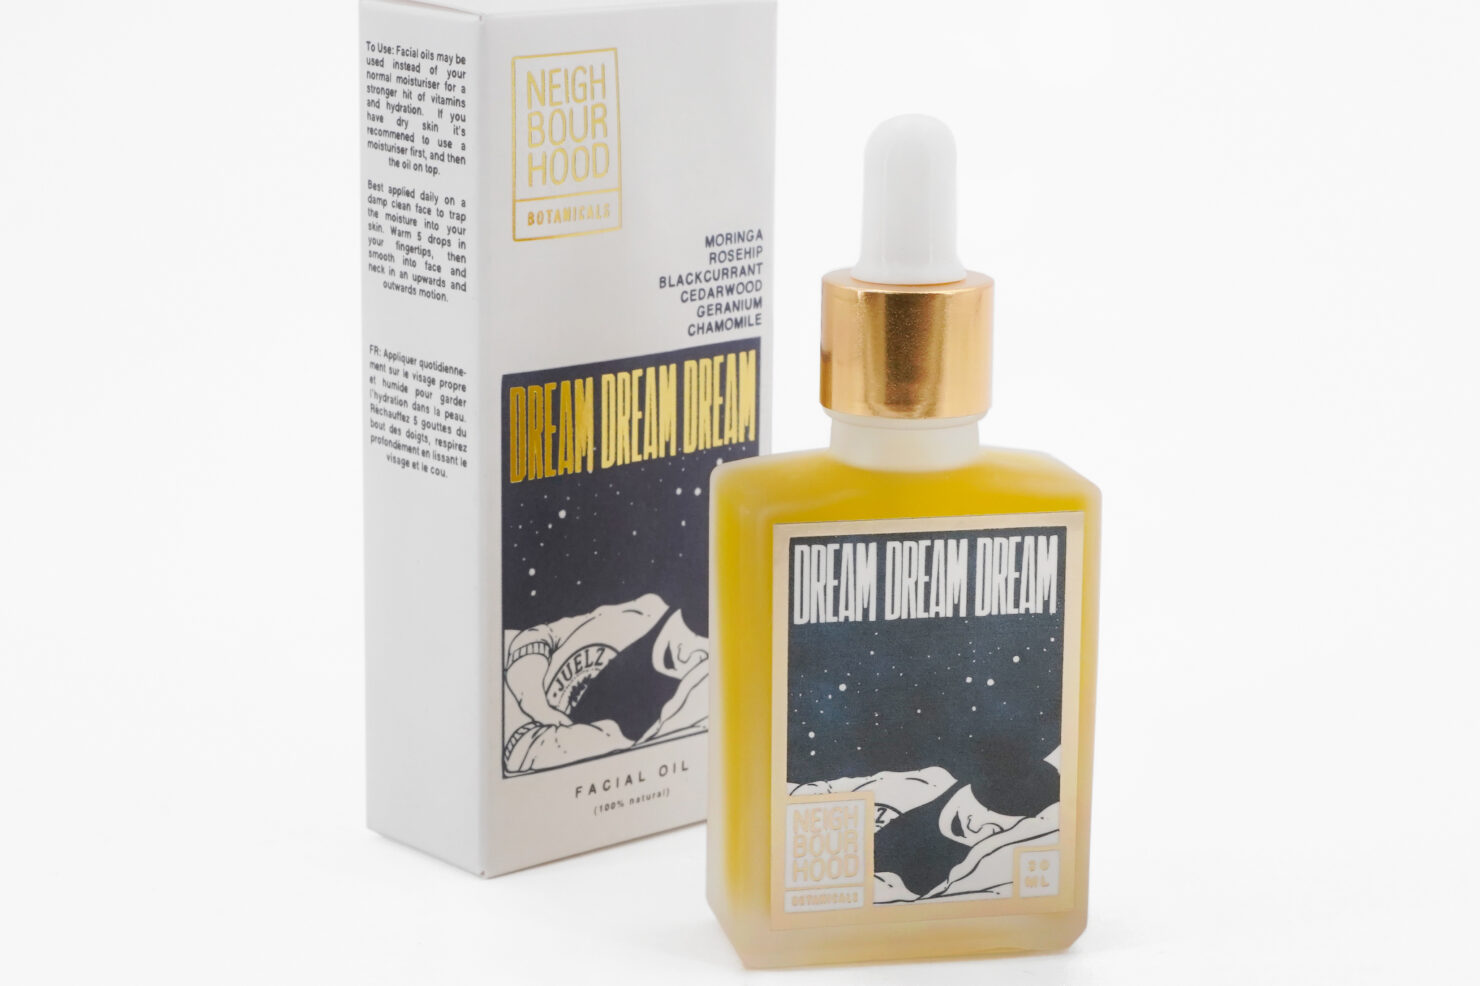 DREAM DREAM DREAM NIGHT FACIAL OIL - NEIGHBOURHOOD BOTANICALS